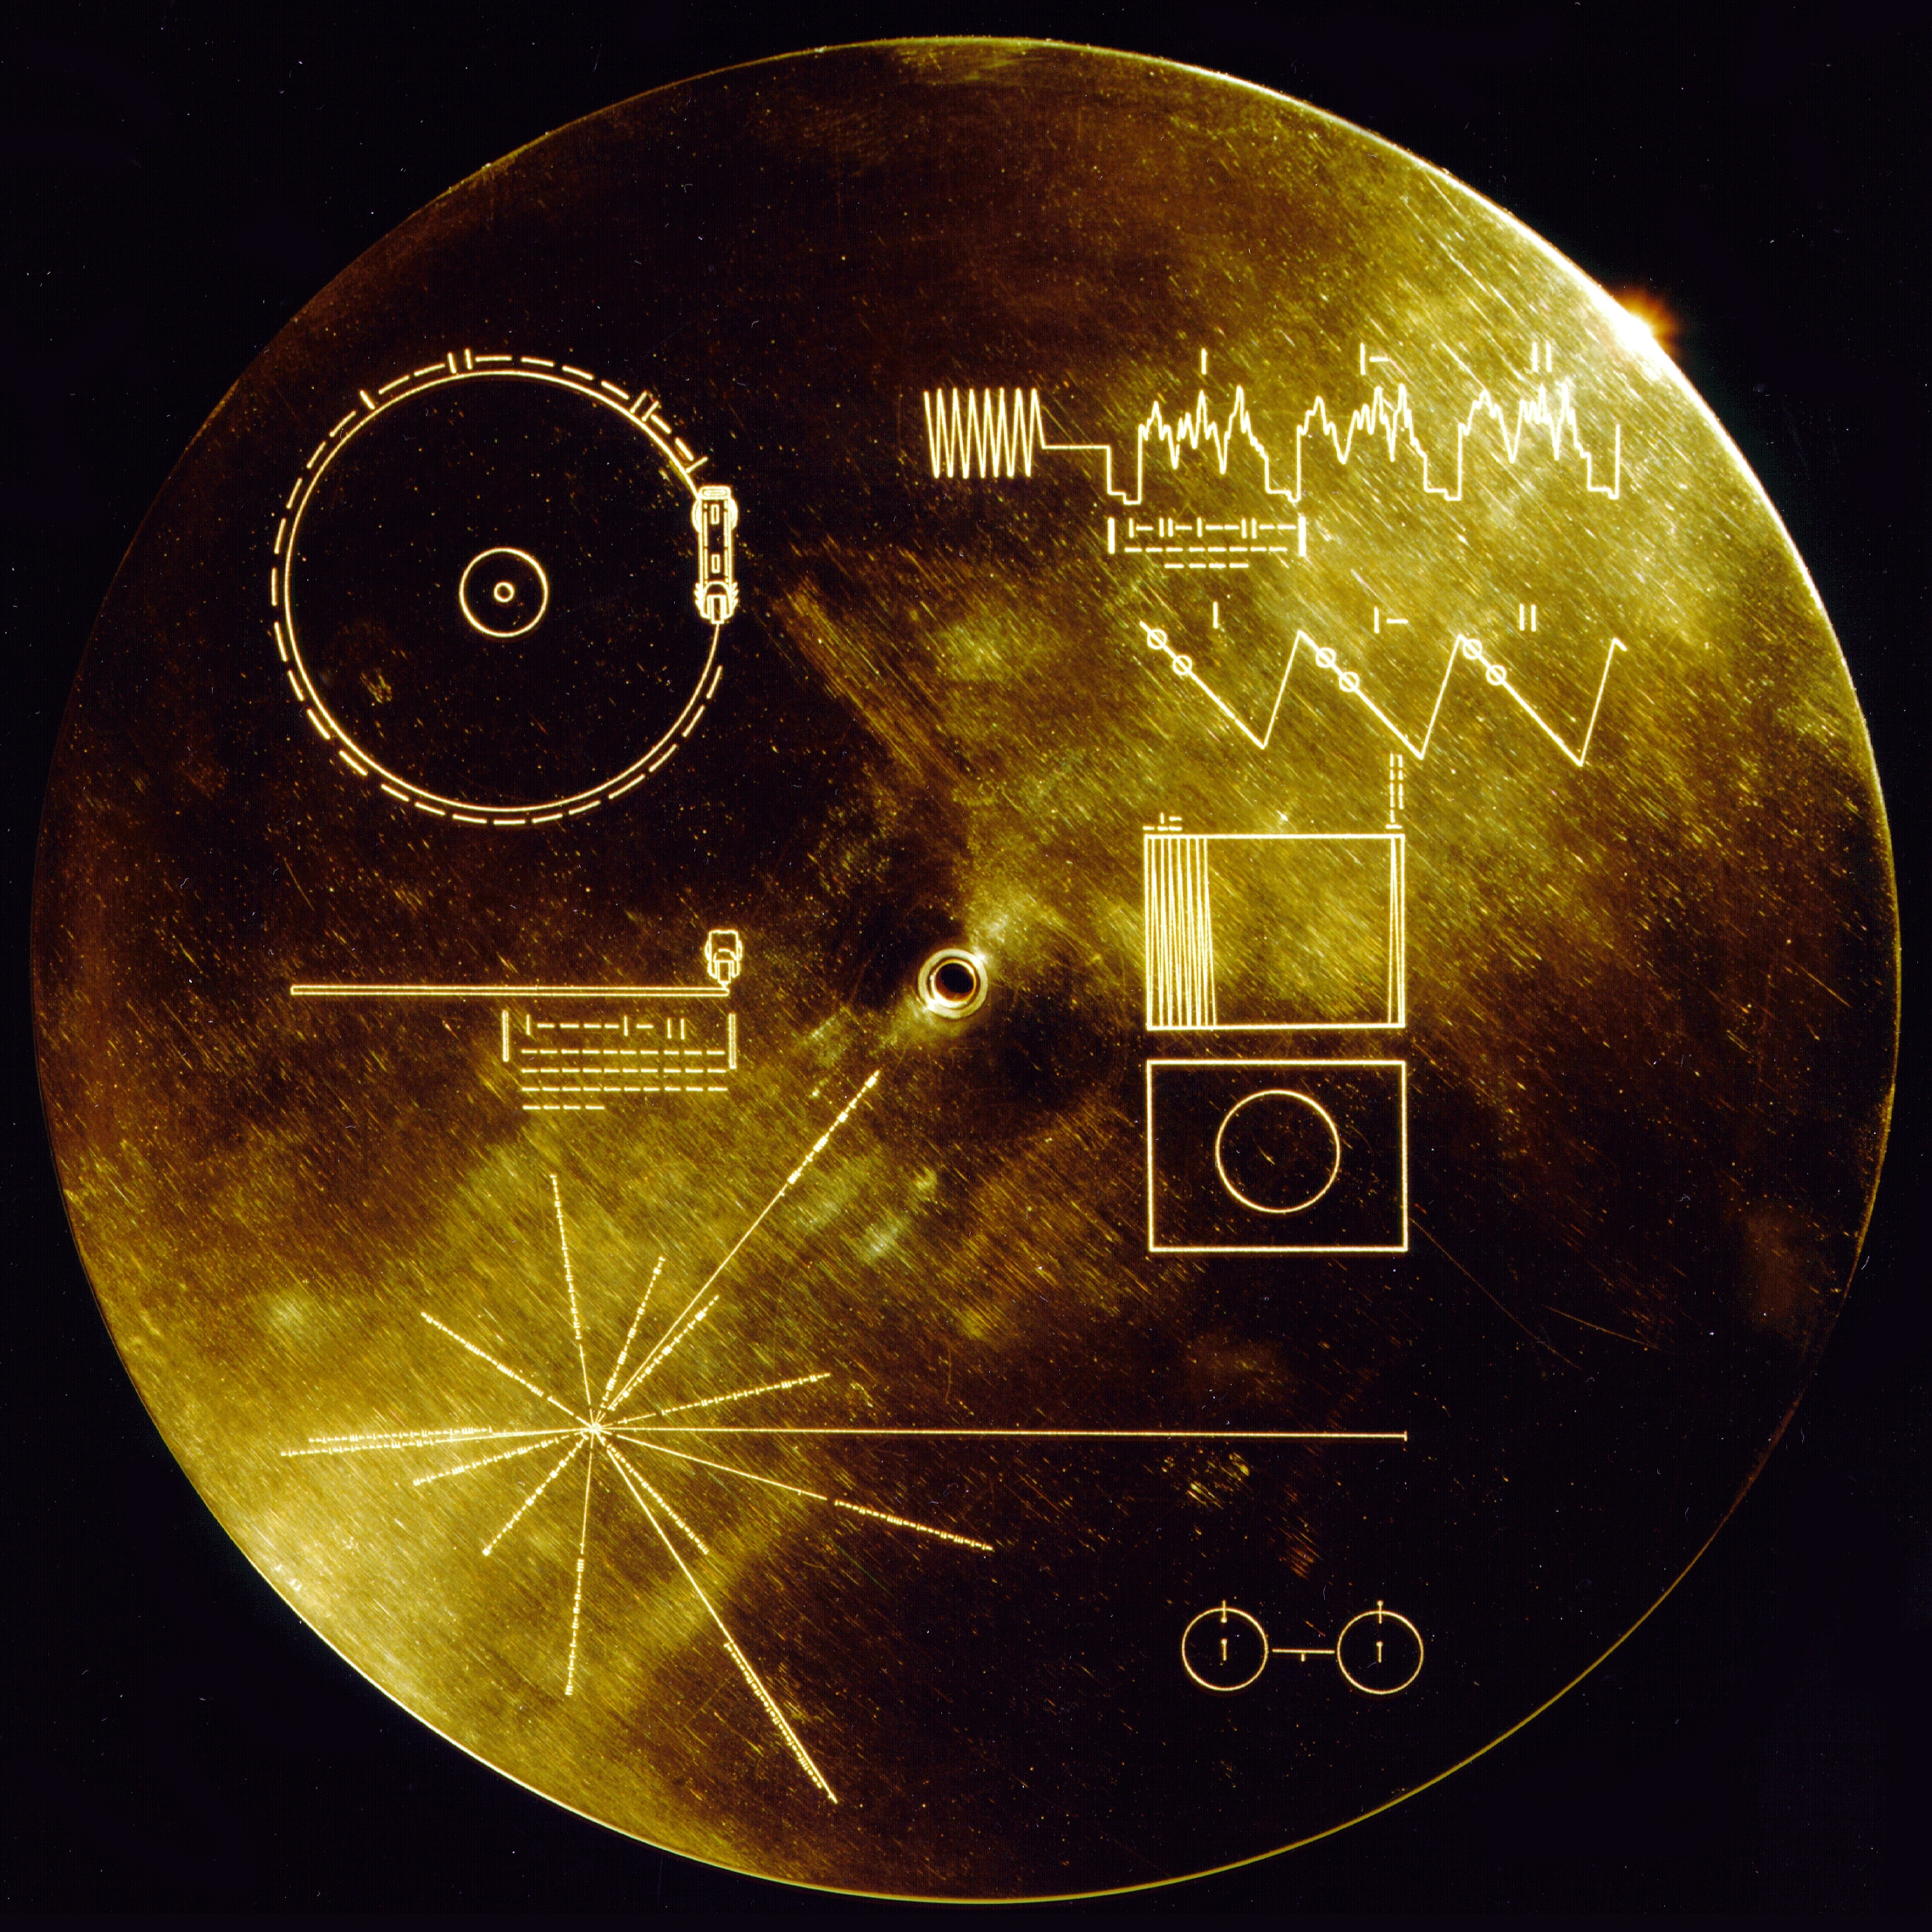 """The cover of the Golden Record. This gold aluminium cover was designed to protect the Voyager 1 and 2 """"Sounds of Earth"""" gold-plated records from micrometeorite bombardment, but also serves a double purpose in providing the finder a key to playing the record. By NASA/JPL [Public domain], via Wikimedia Commons"""